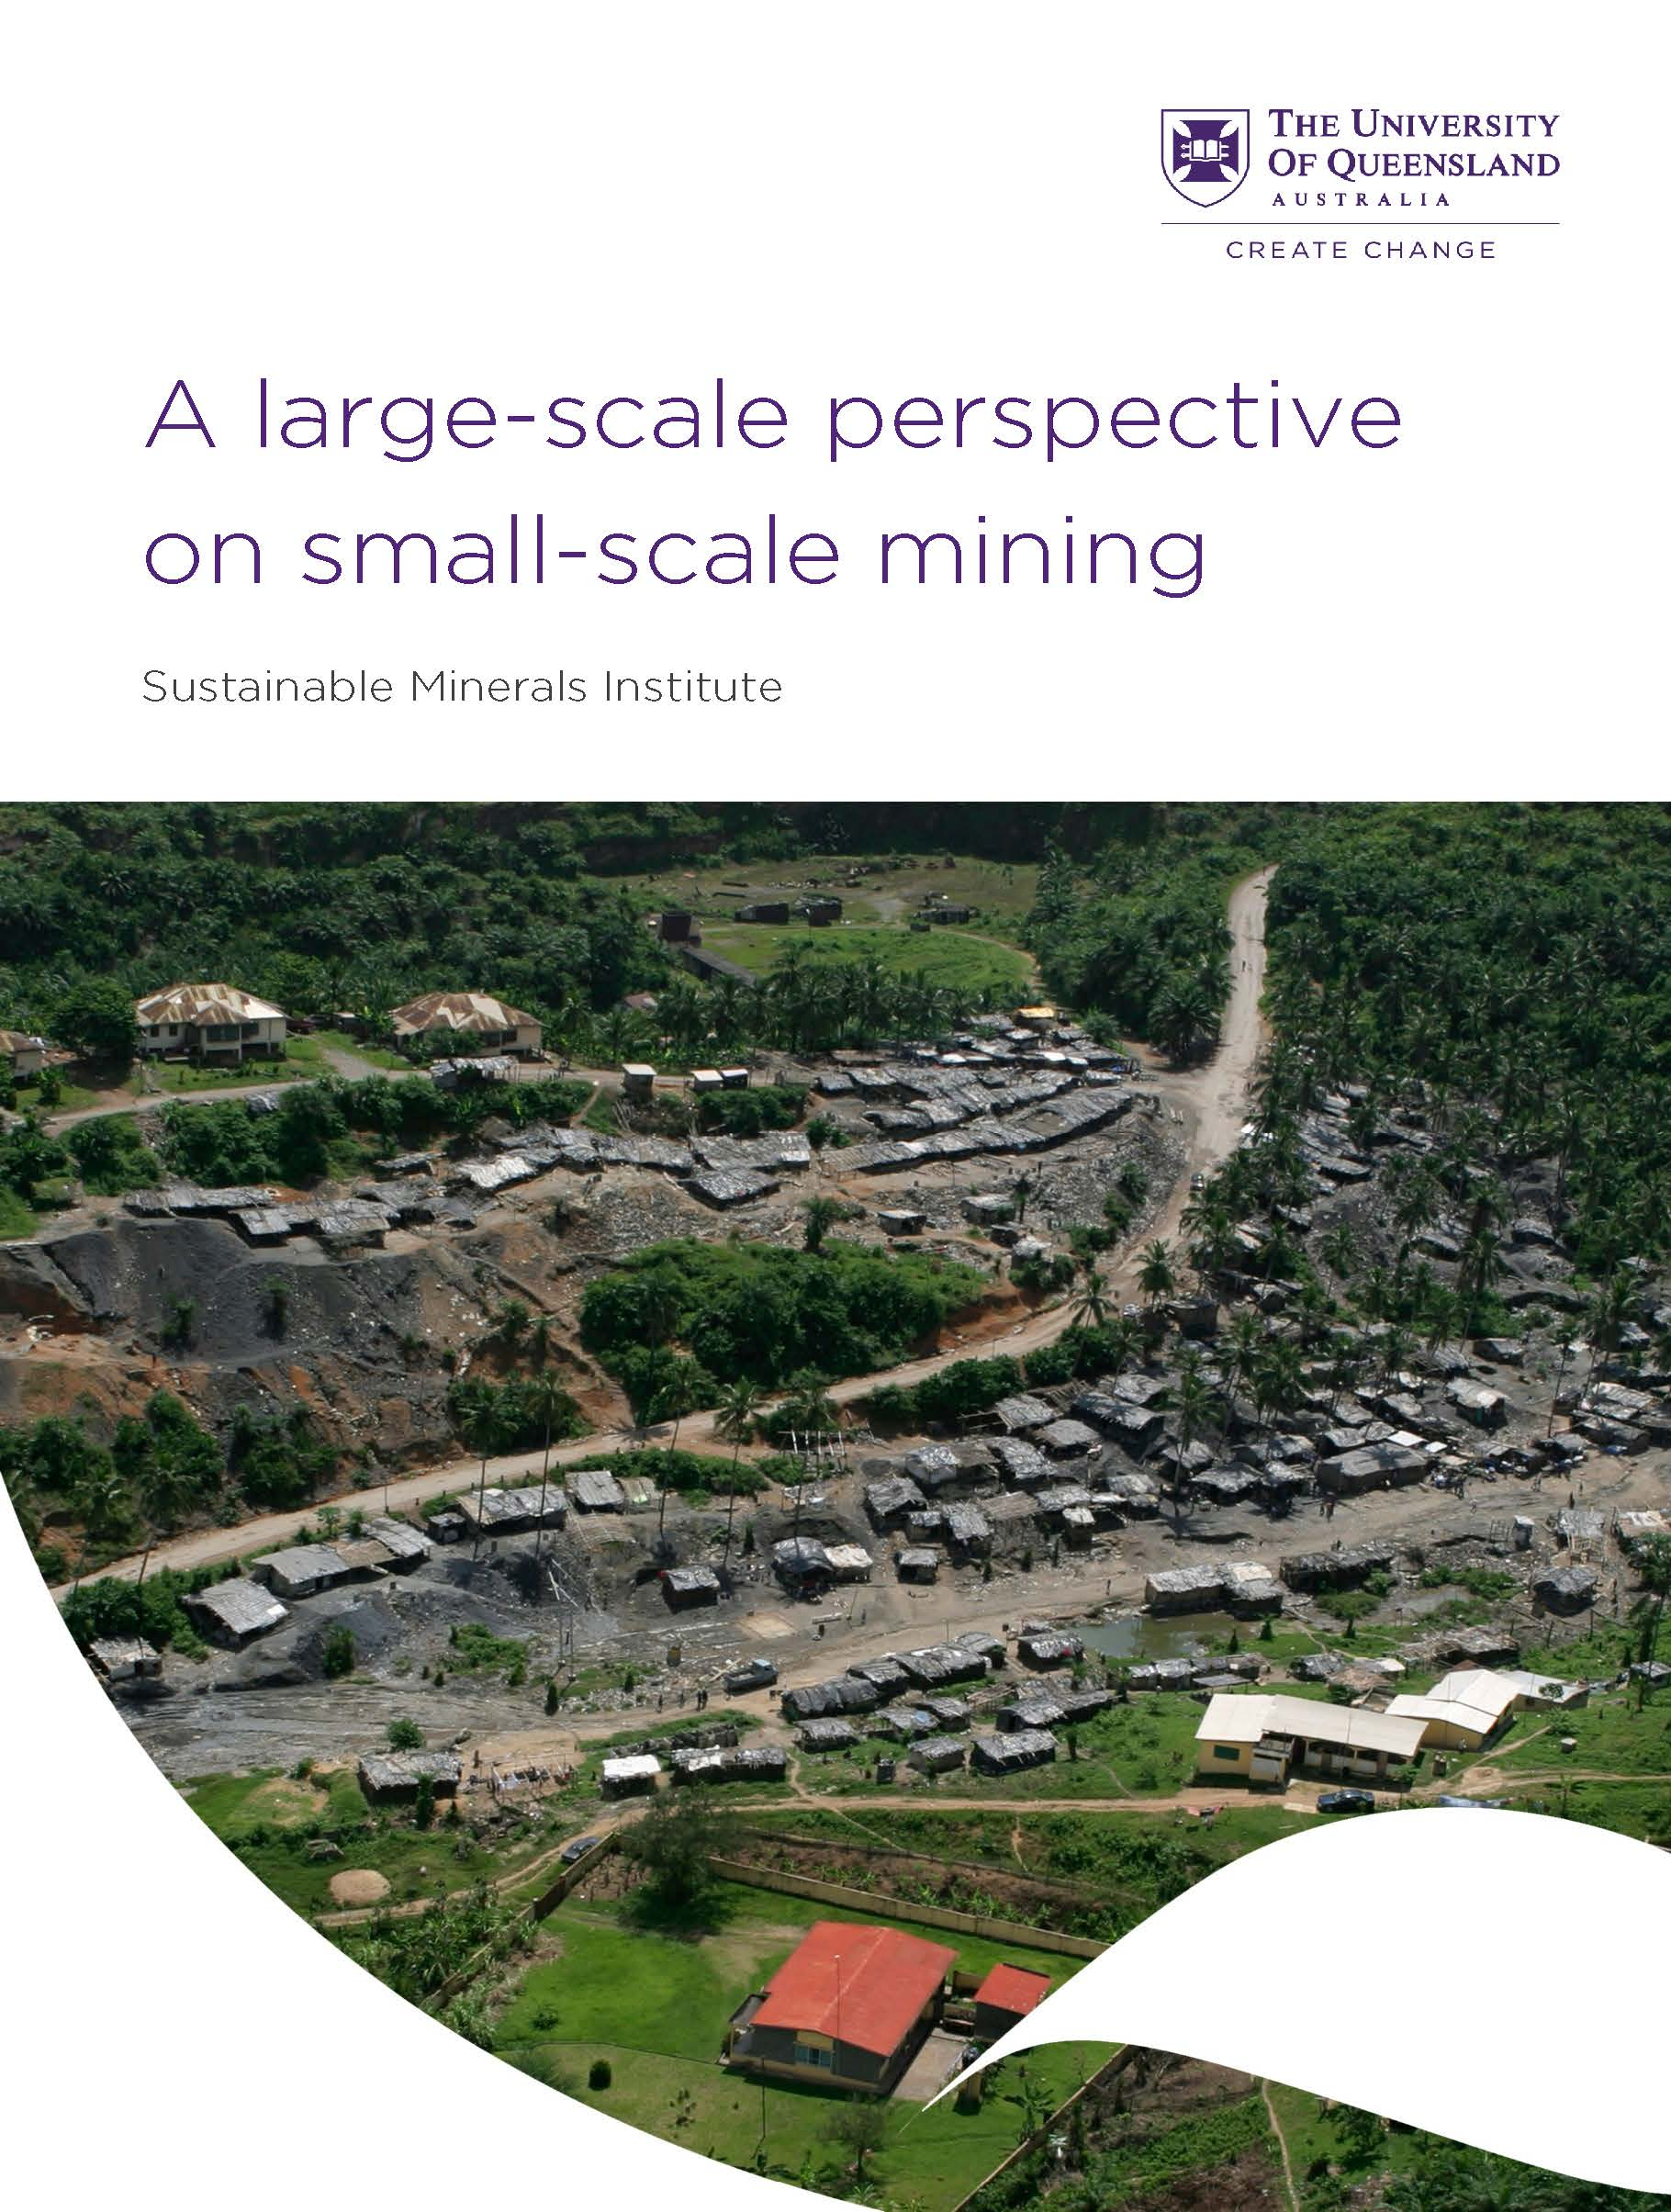 A large-scale perspective on small-scale mining